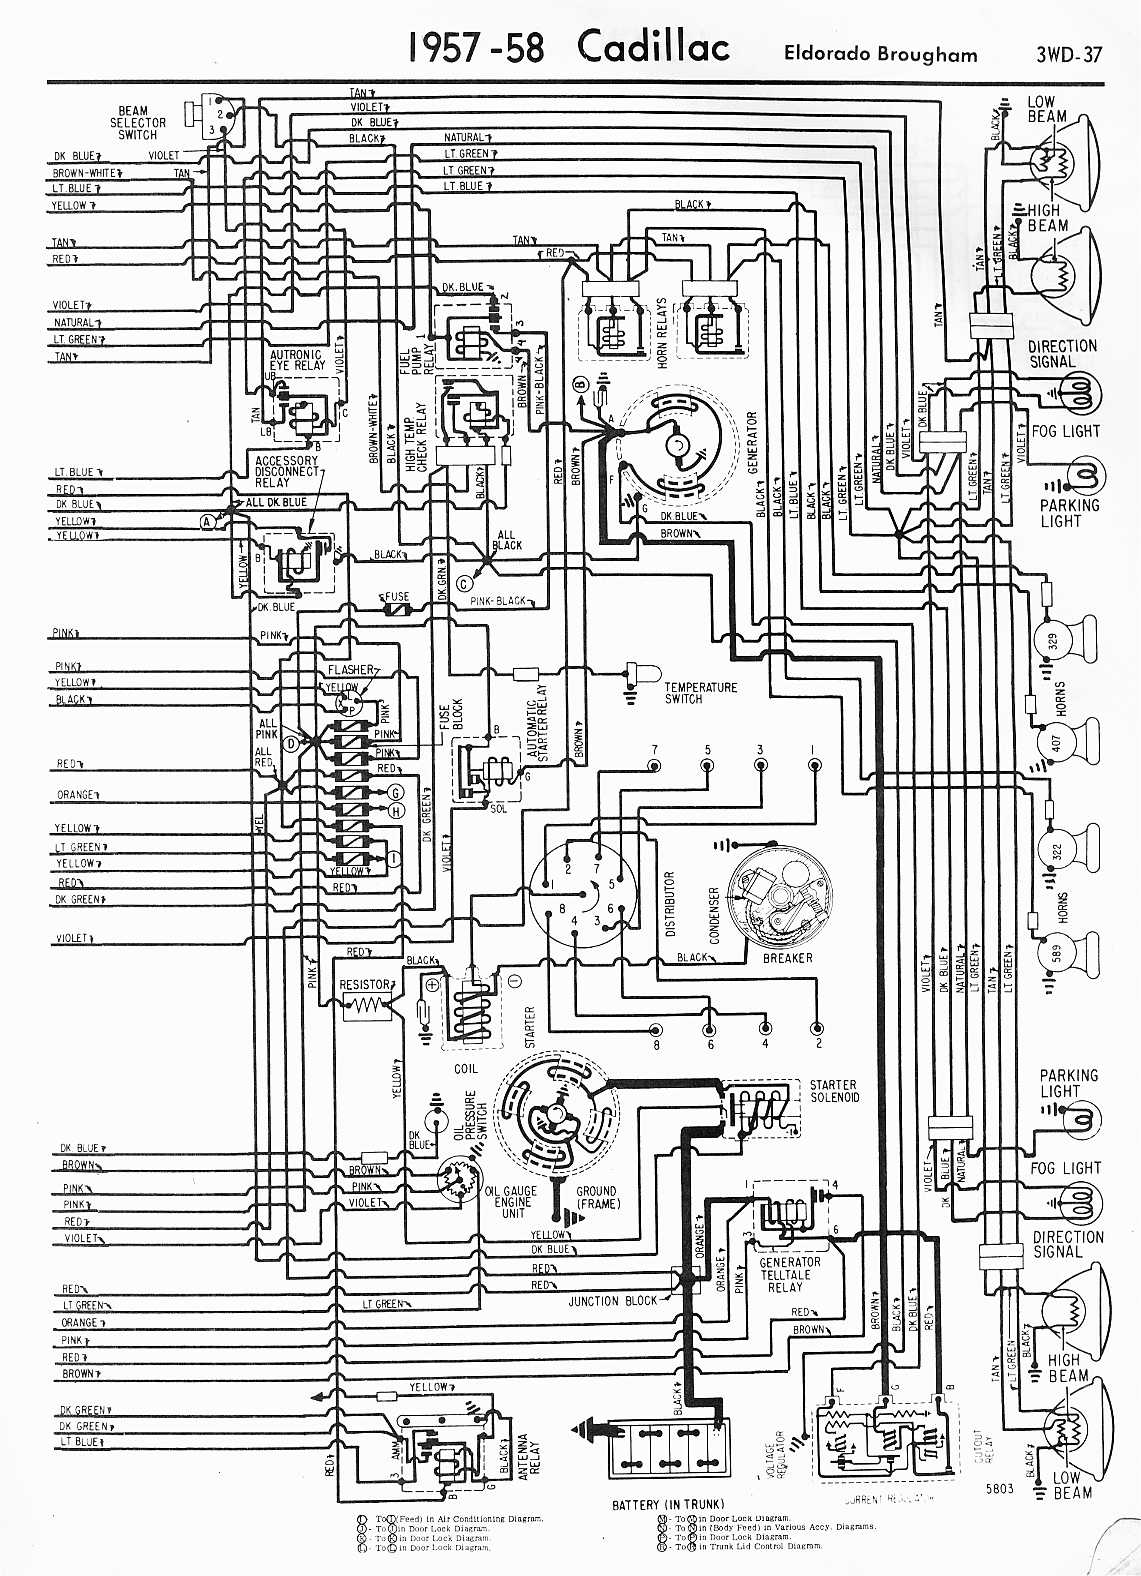 1957 cadillac wiring diagram wiring info u2022 rh cardsbox co Cadillac Northstar Engine Diagram Cadillac Engine Parts Diagram